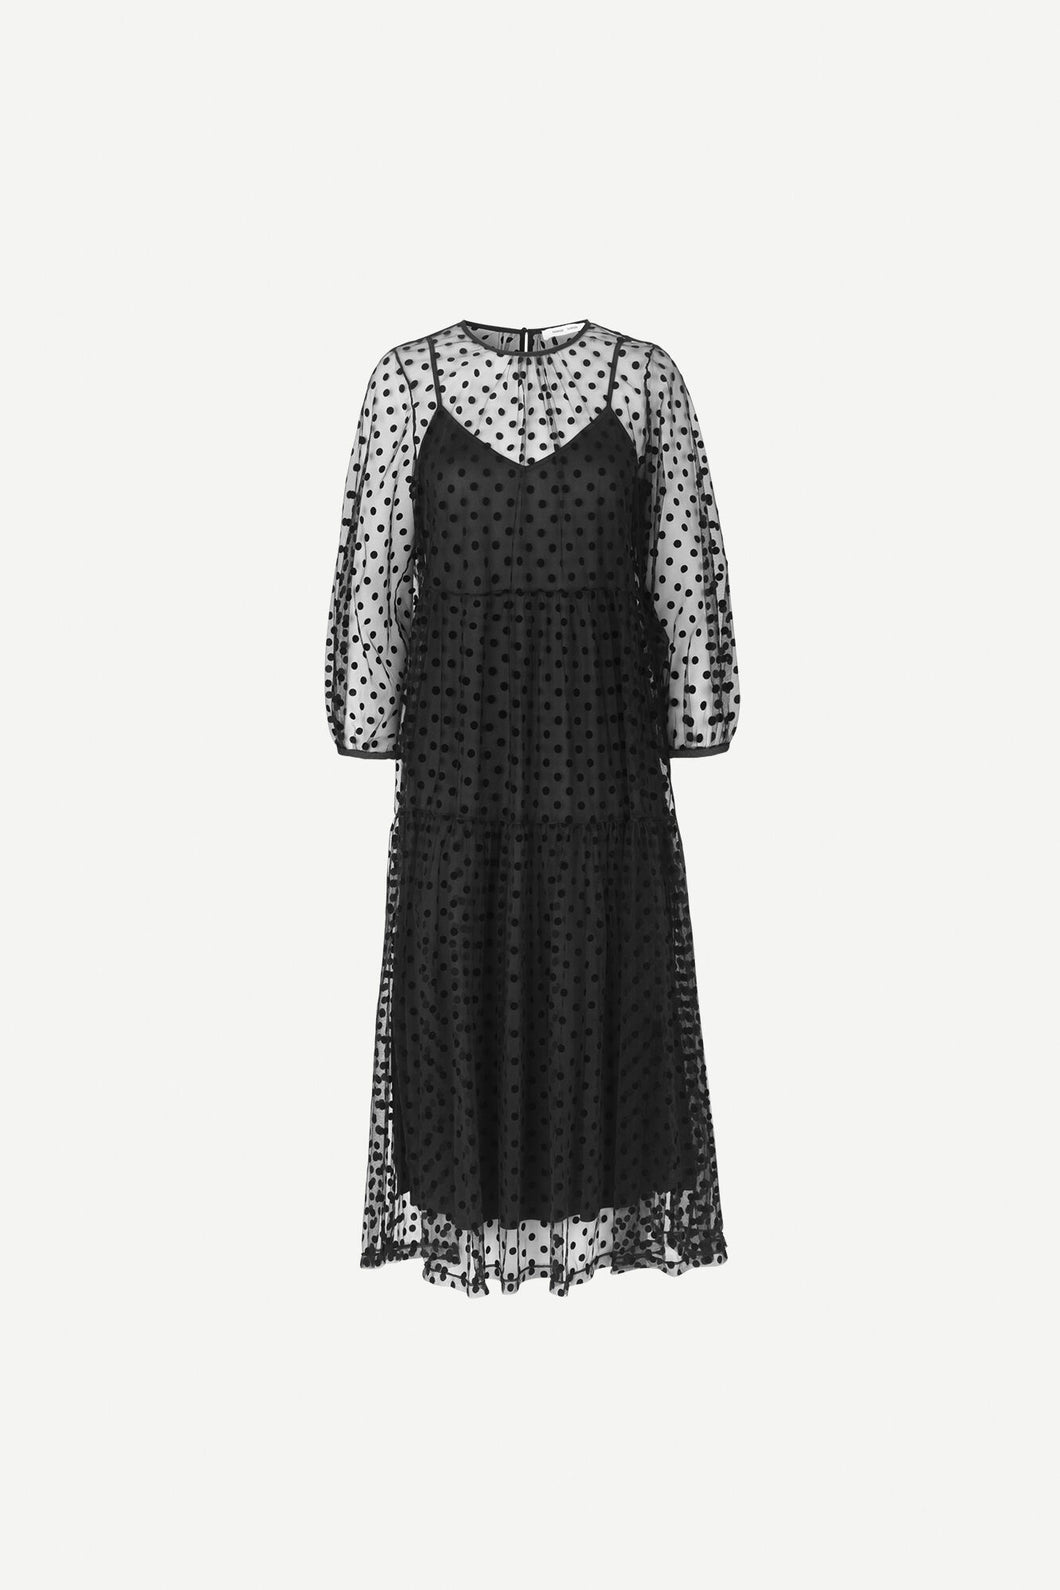 Samsøe Samsøe - Madie Dress - Black